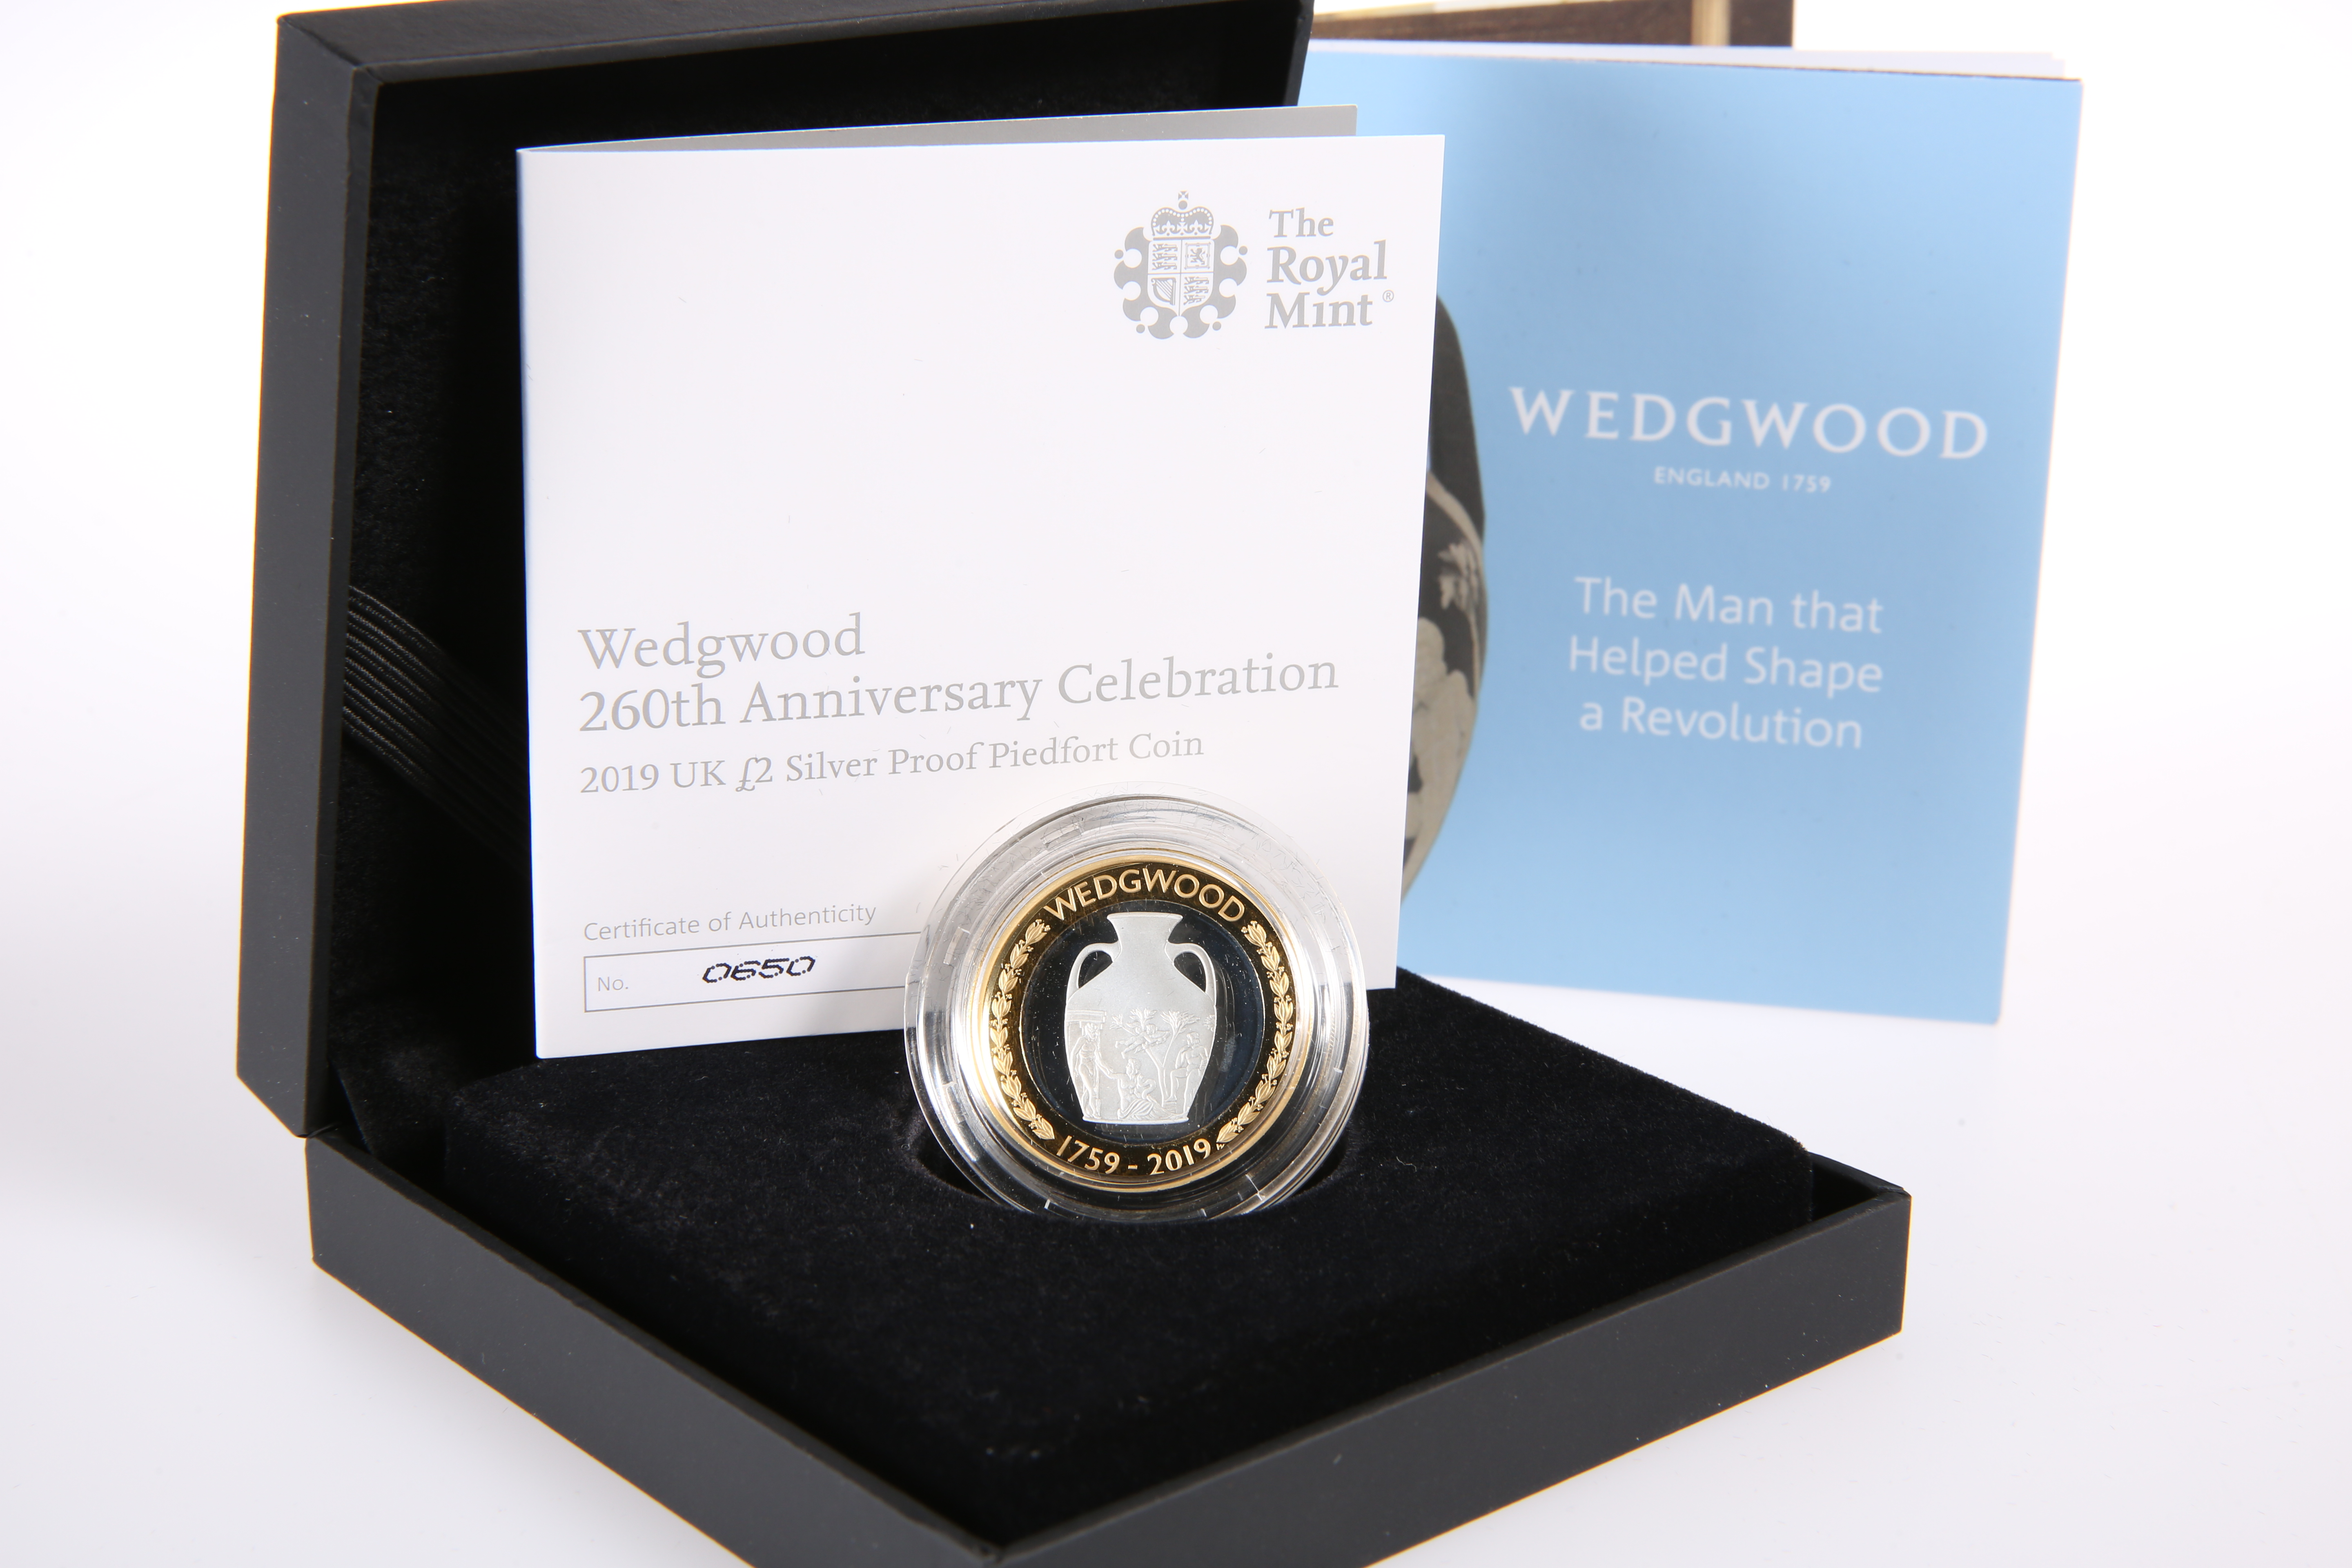 A ROYAL MINT WEDGWOOD 260TH ANNIVERSARY CELEBRATION 2019 £2 SILVER PROOF PIEDFORT COIN, boxed with